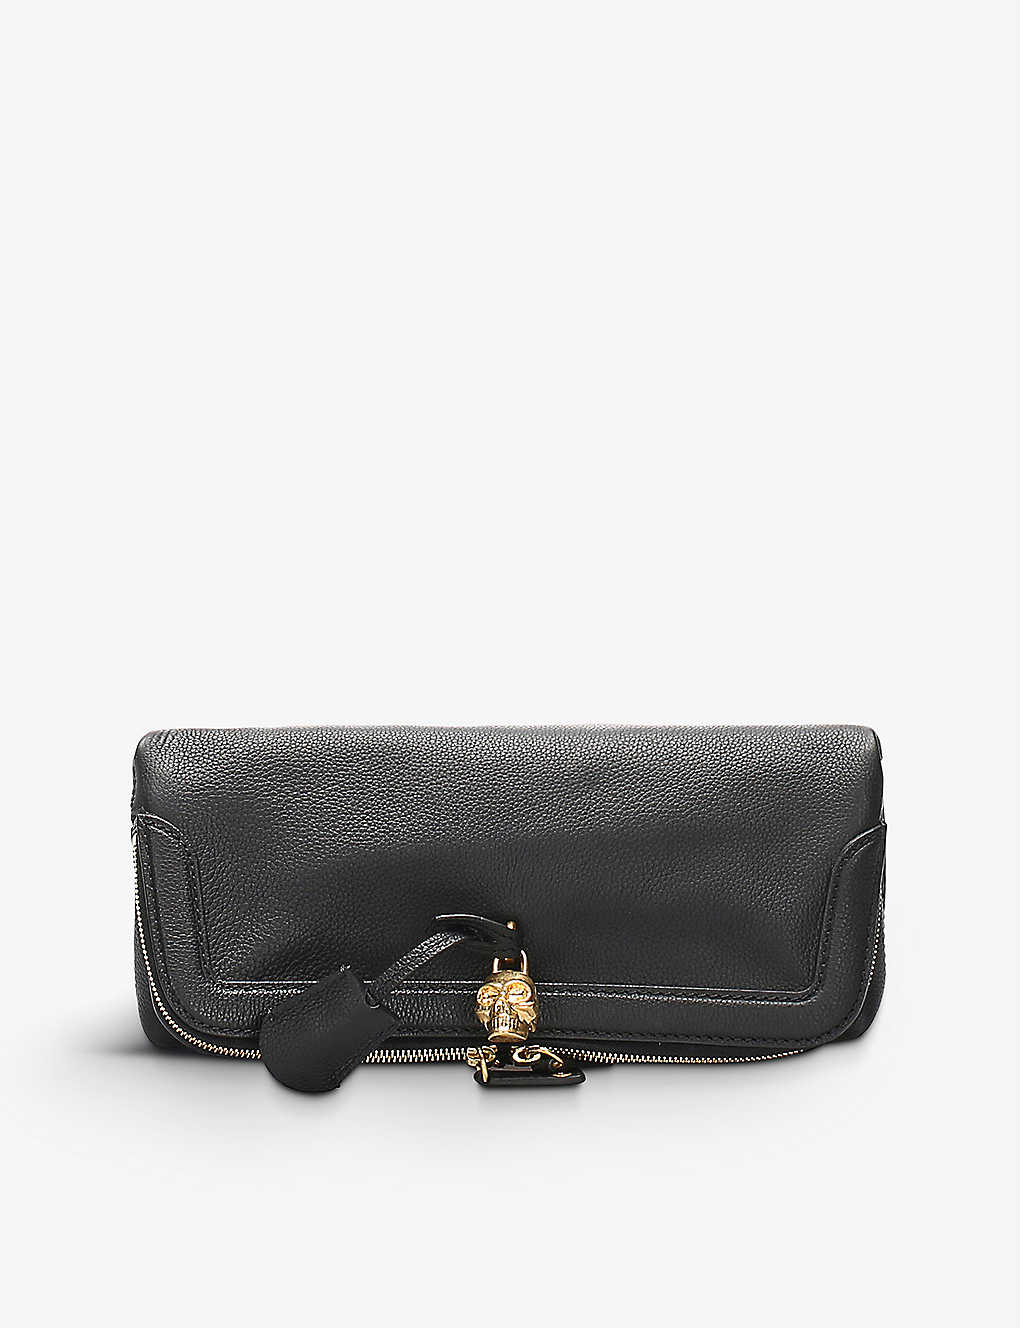 RESELLFRIDGES: Pre-loved Alexander McQueen fold-over leather clutch bag